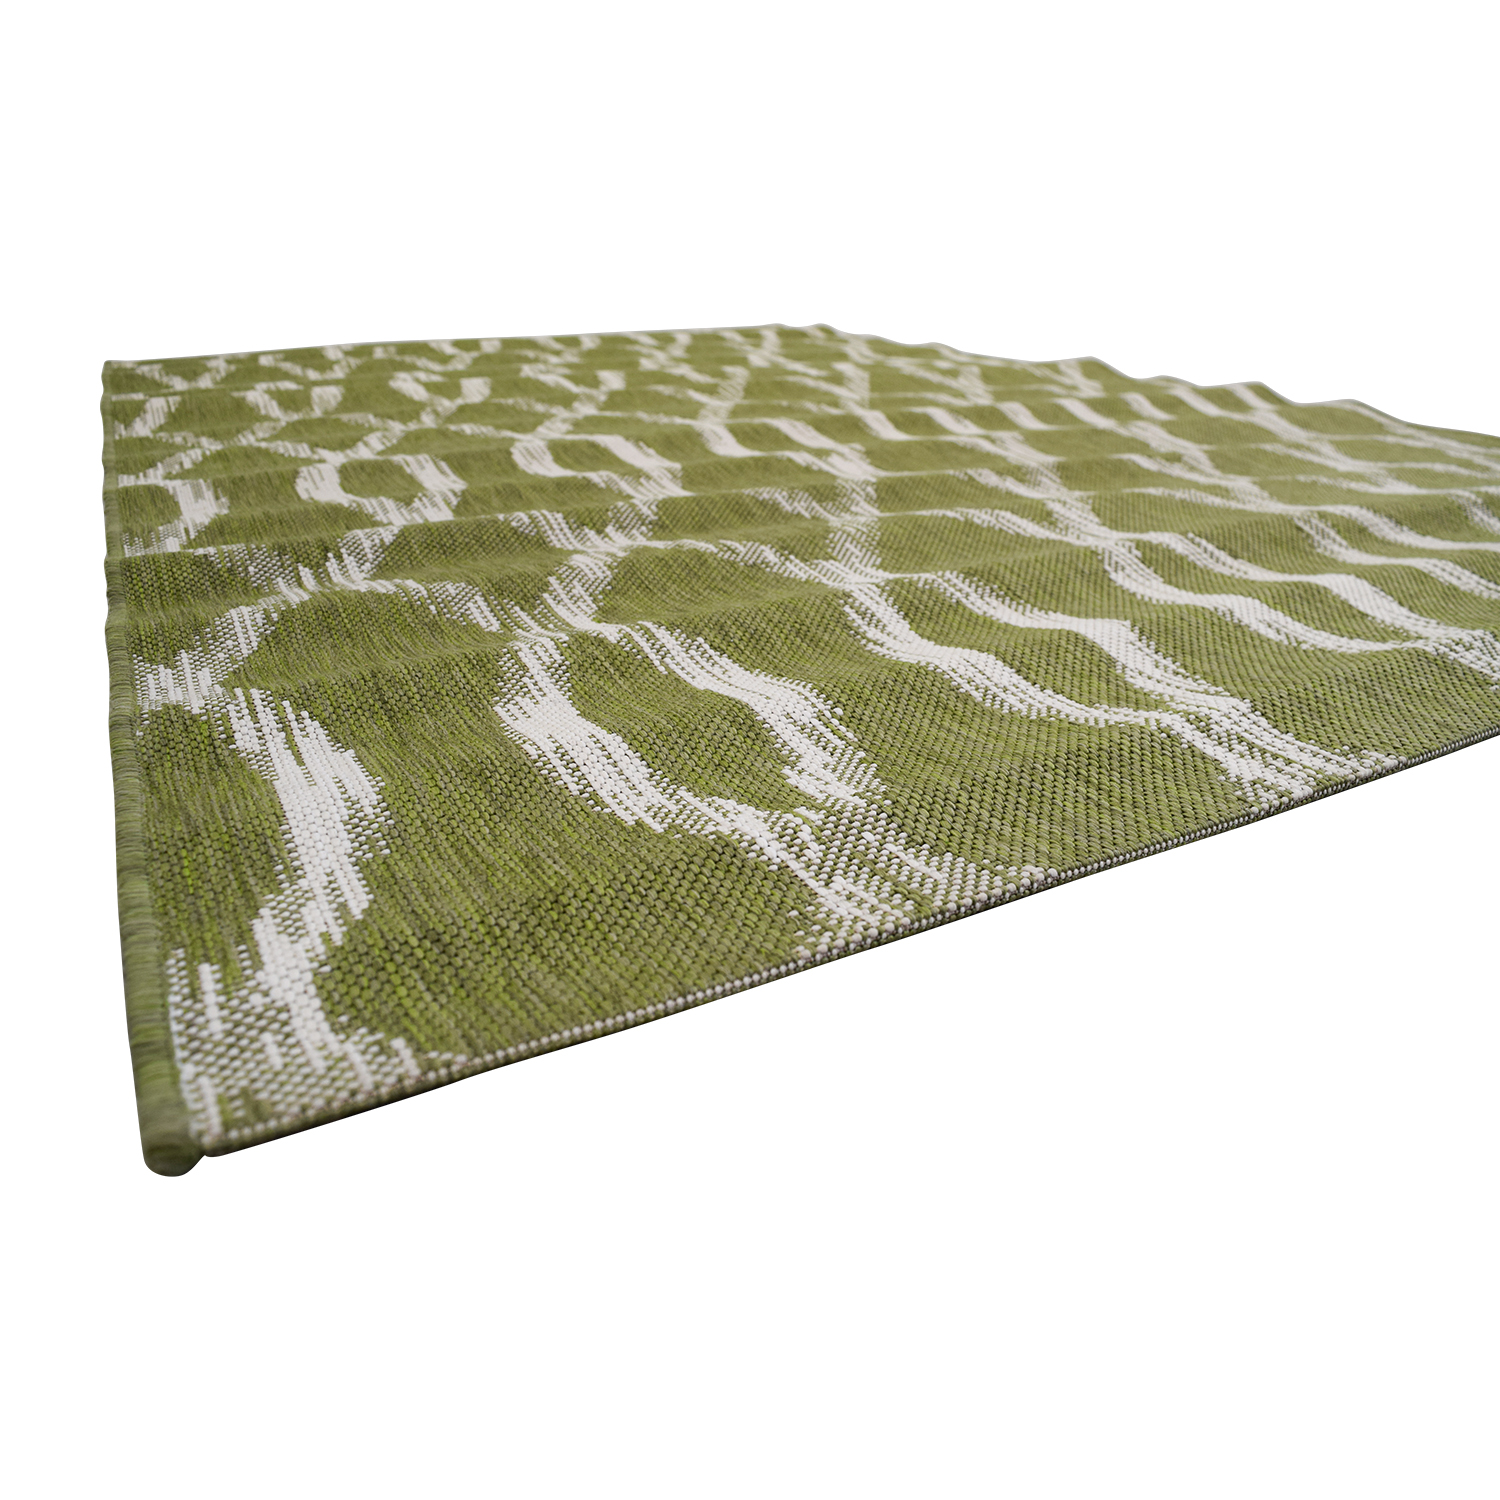 Crate & Barrel Crate & Barrel Indoor and Outdoor Green and White Rug discount